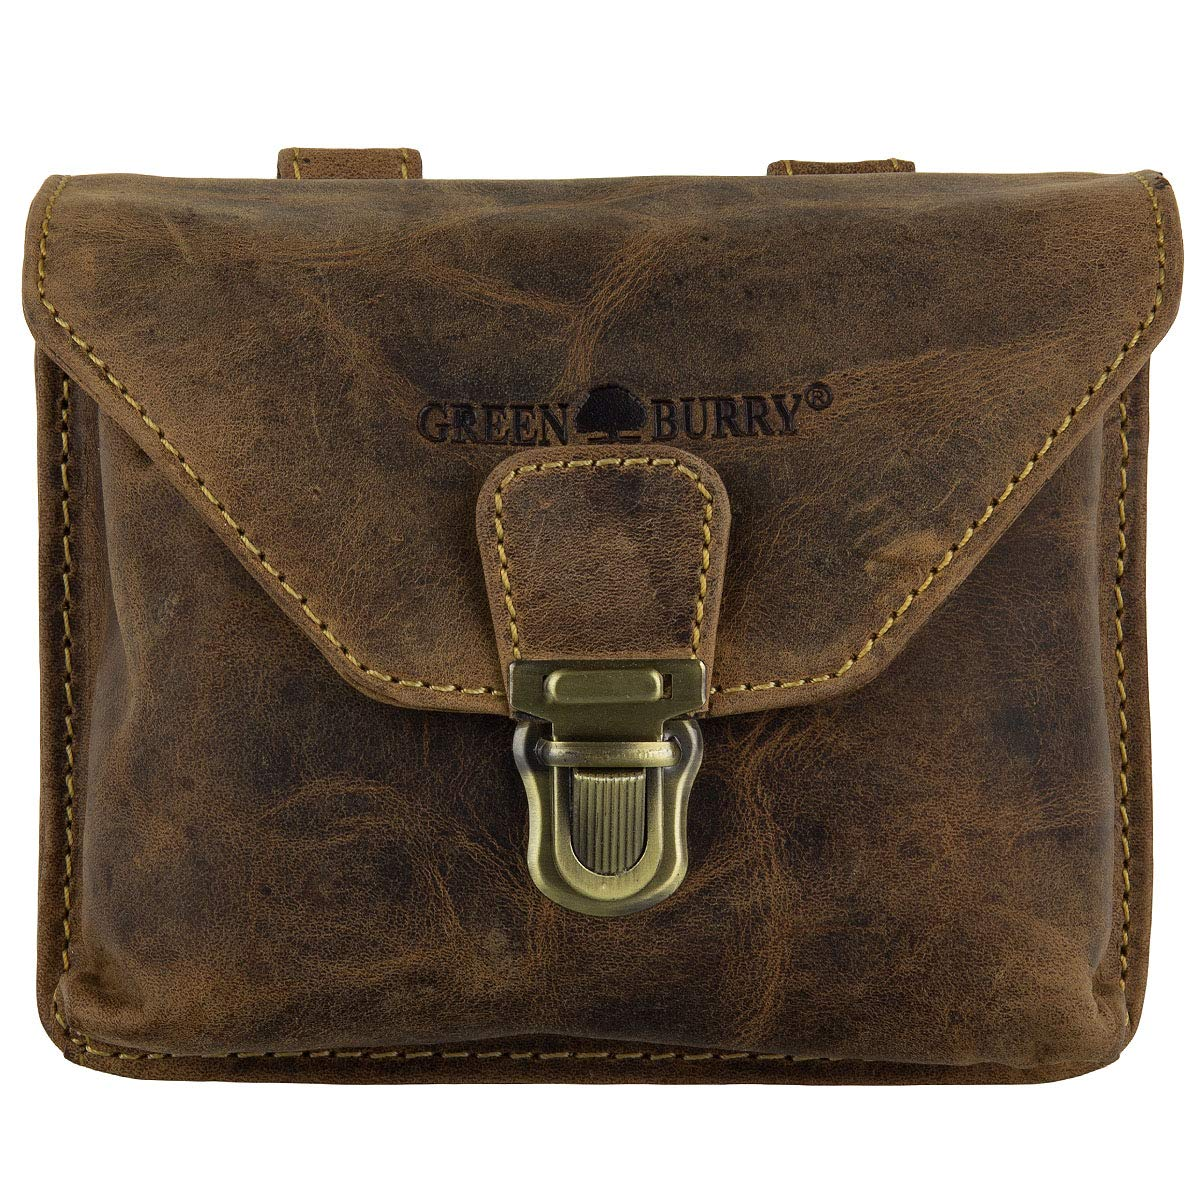 Greenburry Vintage Bum Bag Leather 15 cm sattelbraun 1754V-25